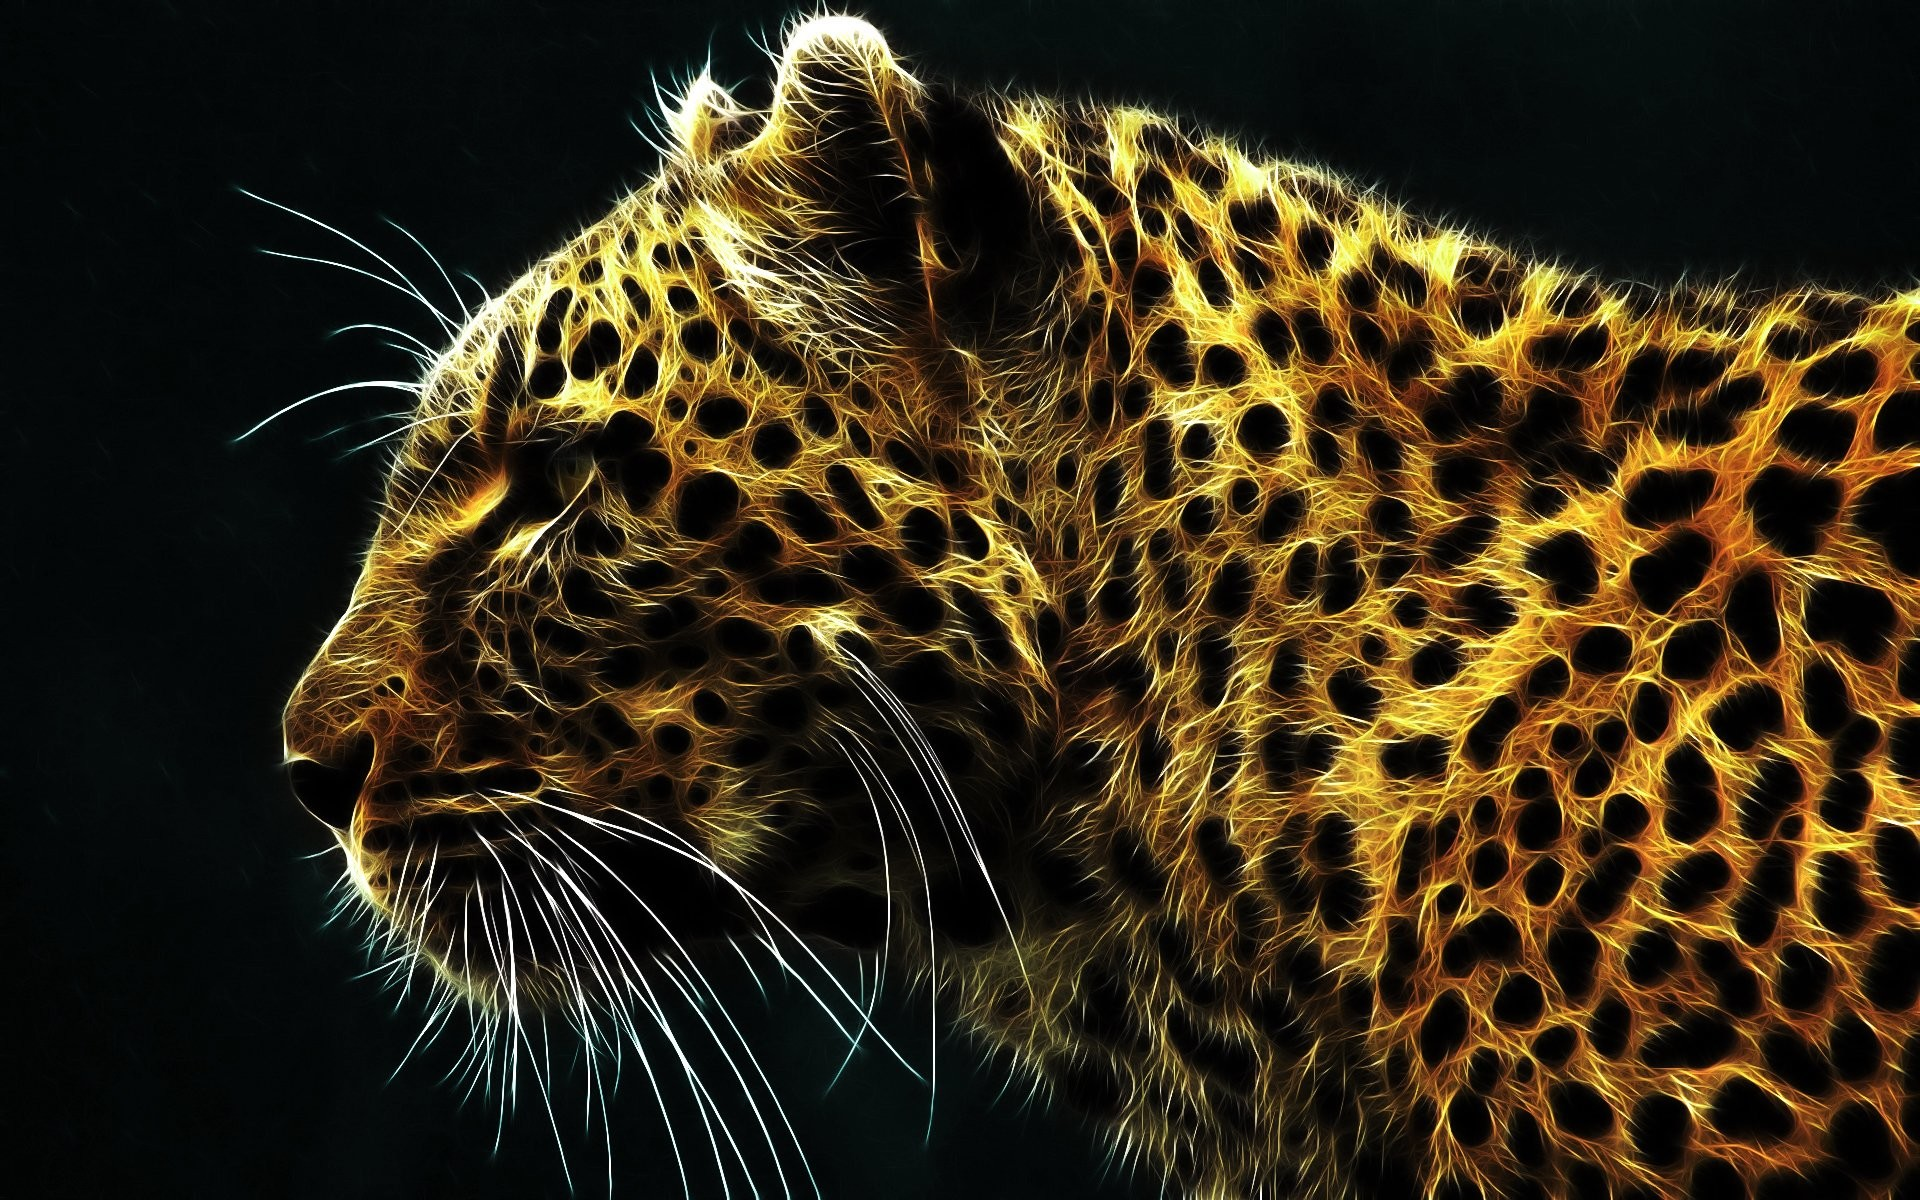 Res: 1920x1200, HD Wallpaper | Background Image ID:66550.  Animal Leopard